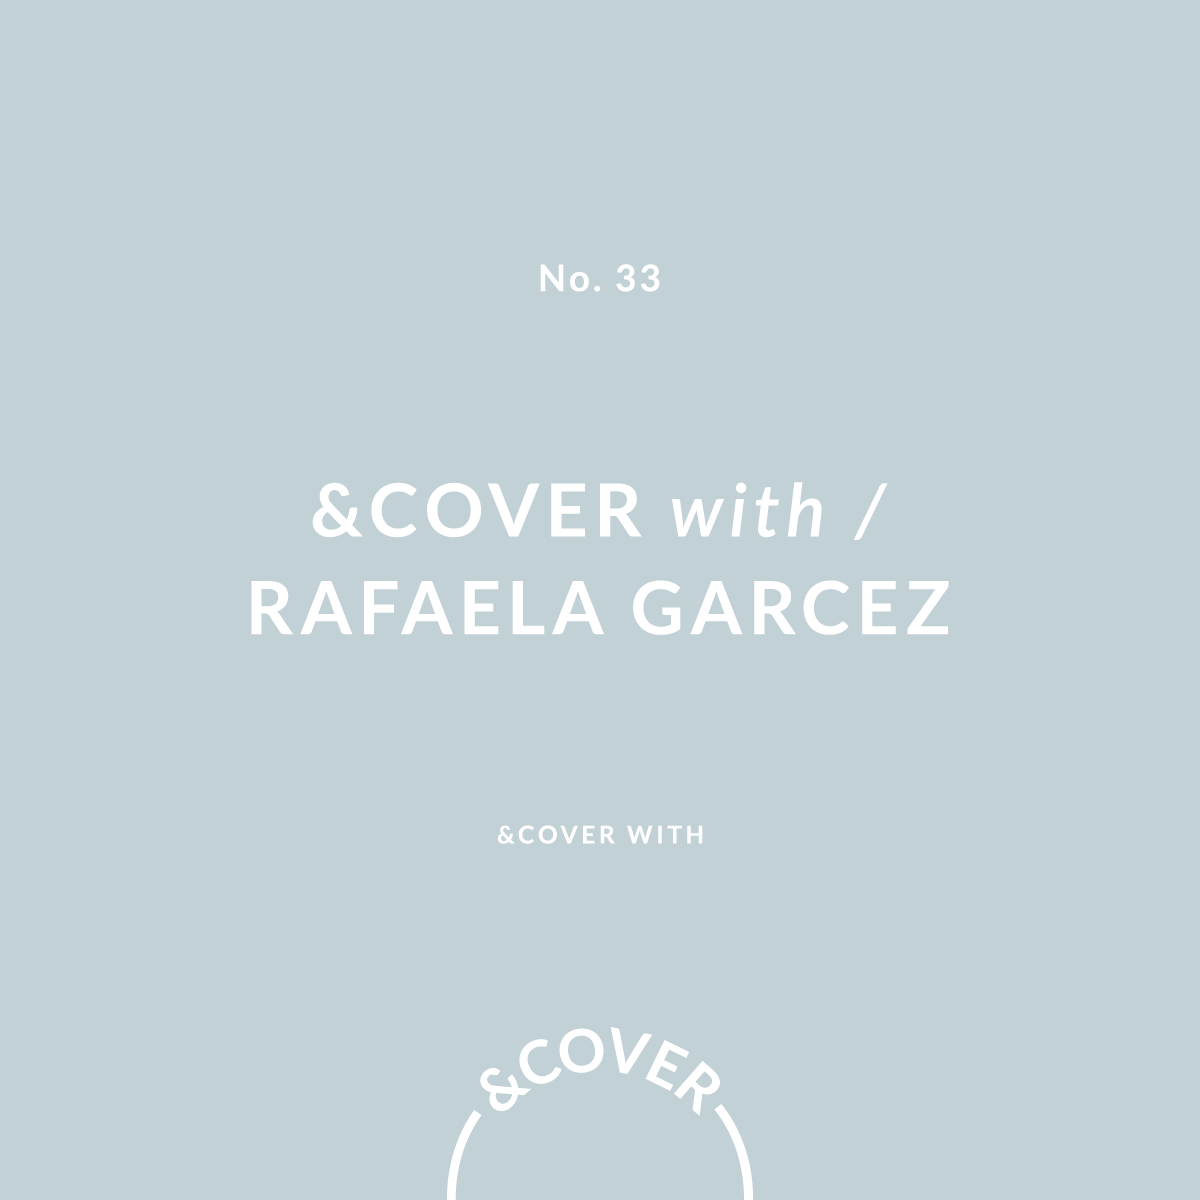 &cover-with-rafaela-garcez